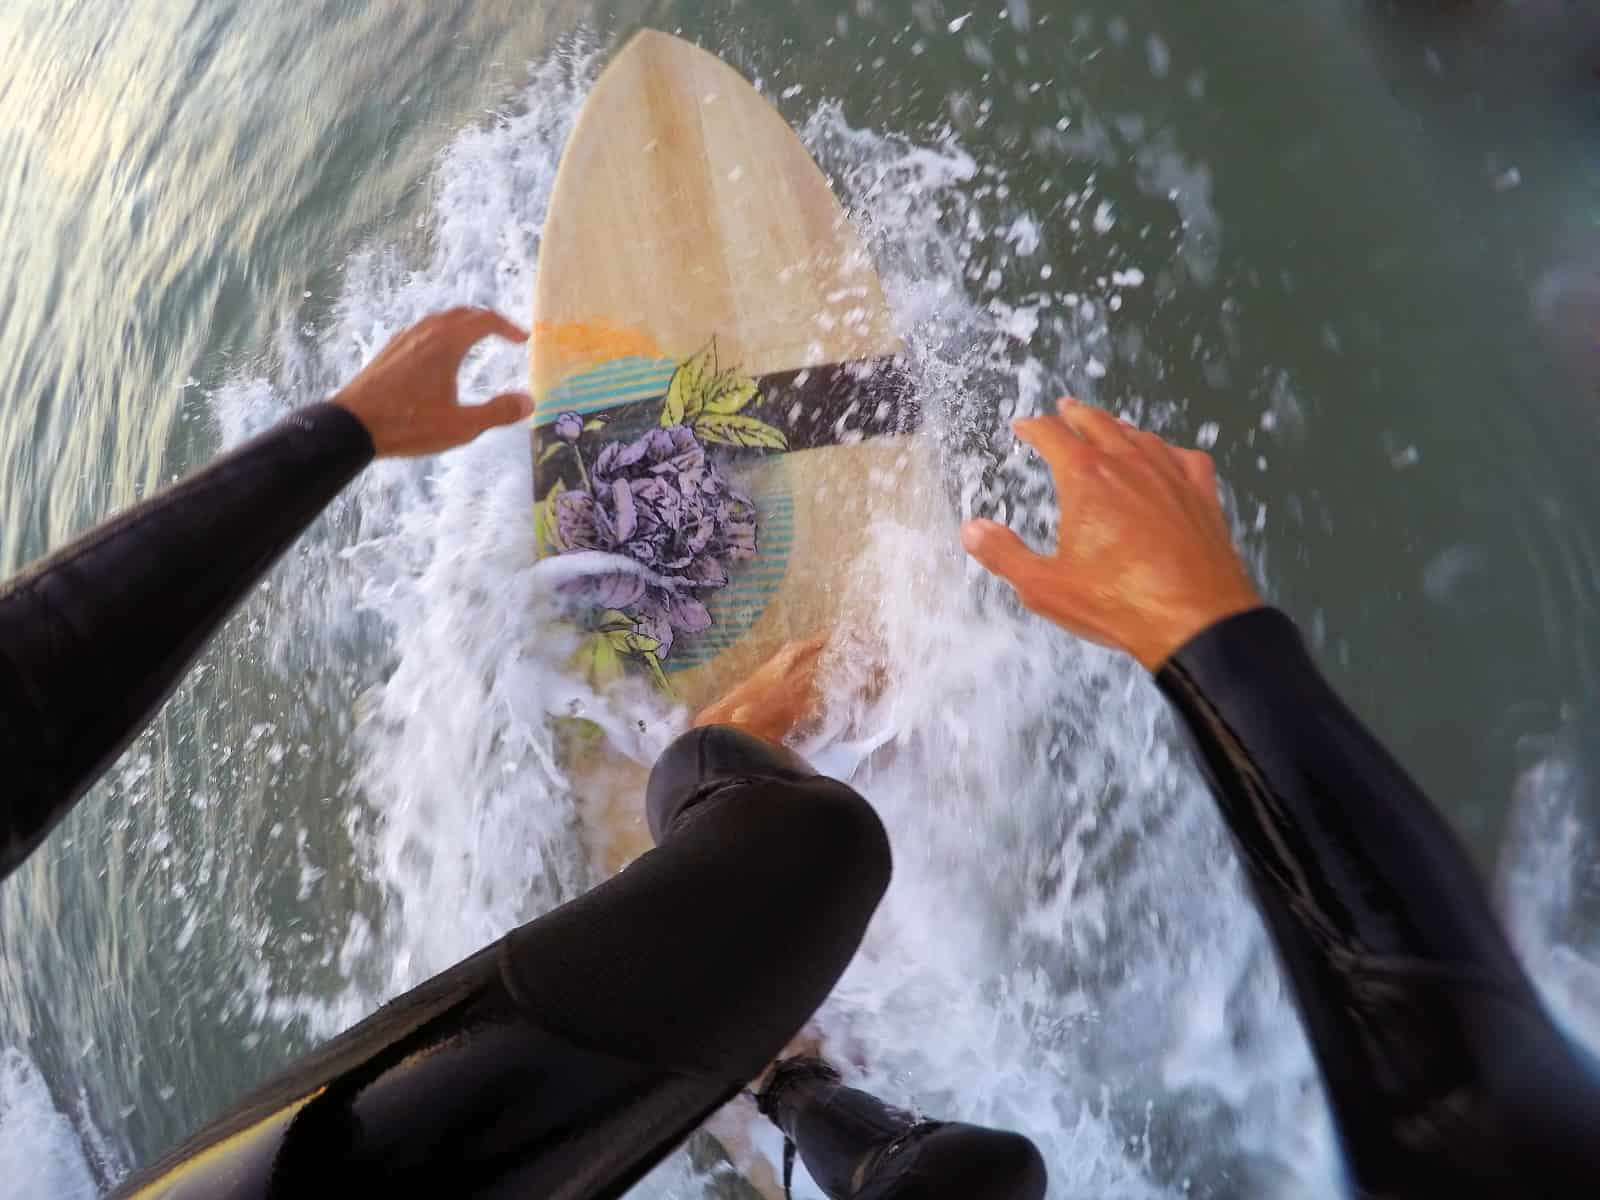 Testing my friends hollow wooden surfboard